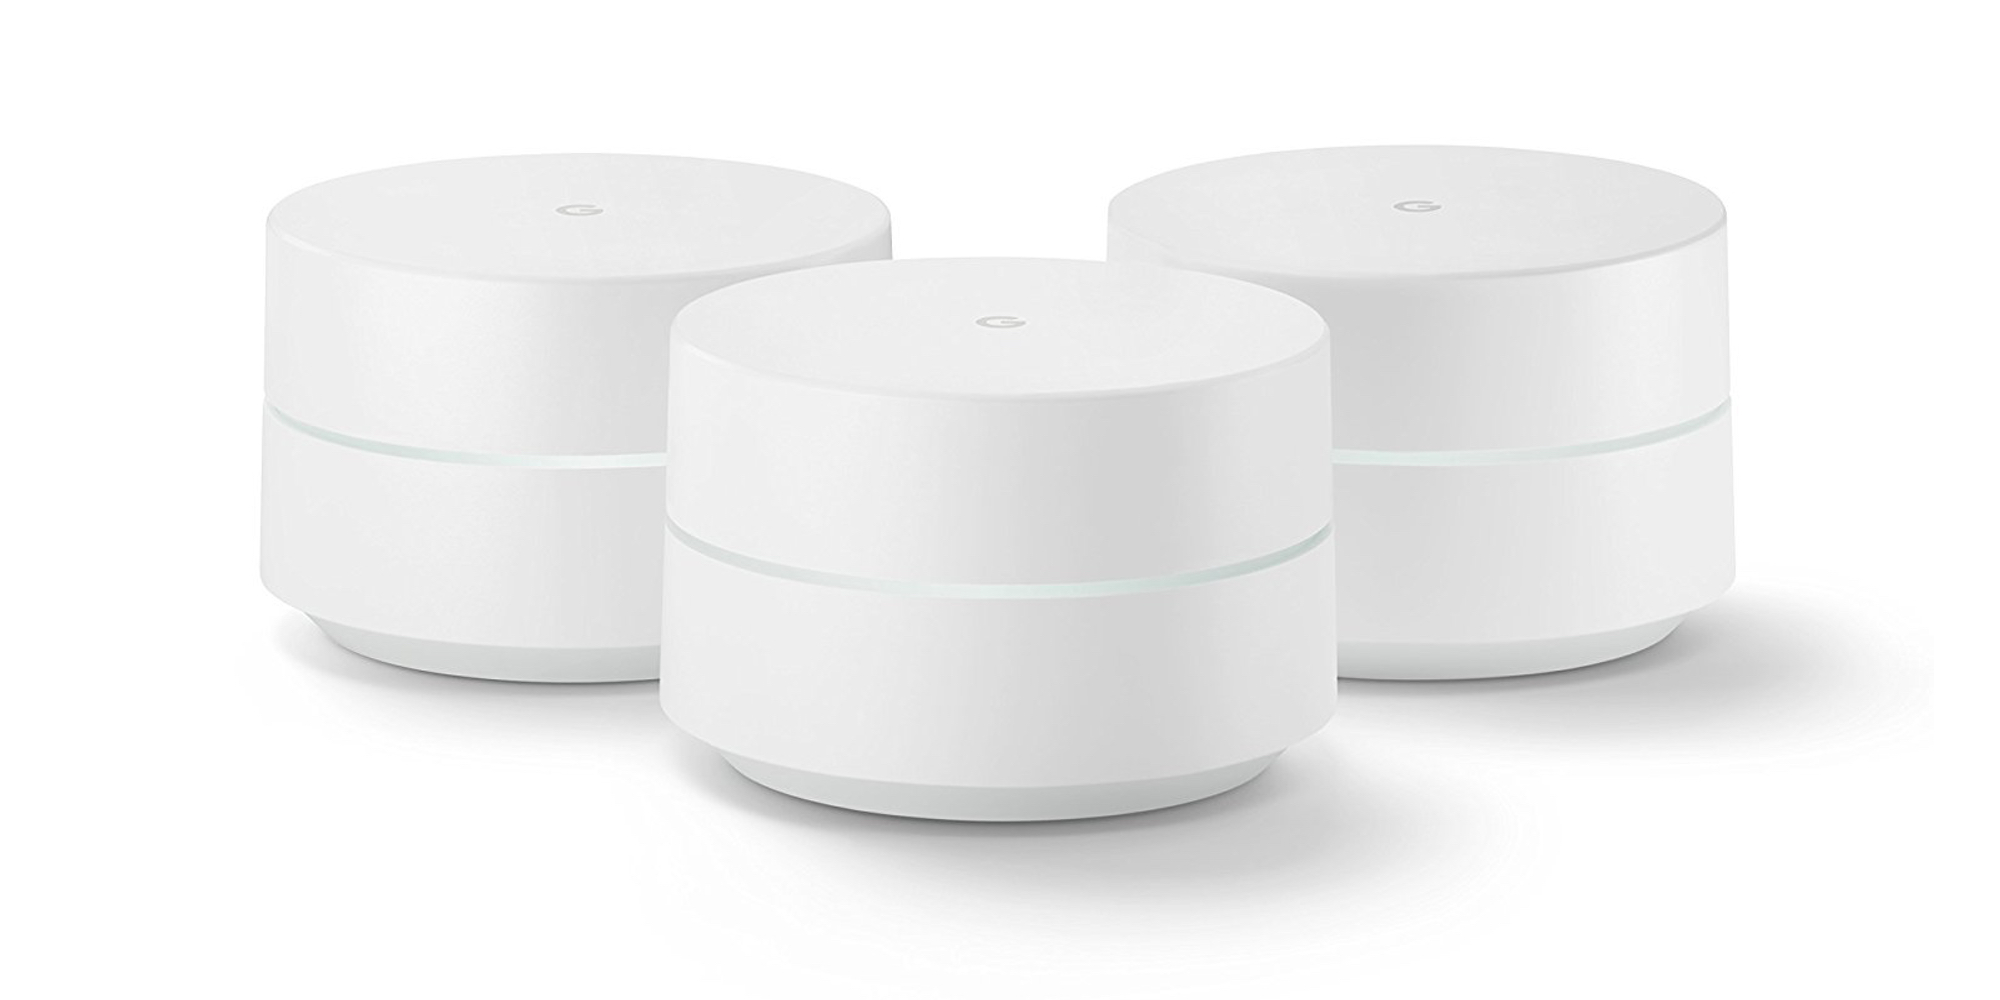 Eliminate coverage issues w/ a 3-pack of Google Wi-Fi for $220 ($30 off), more from $17